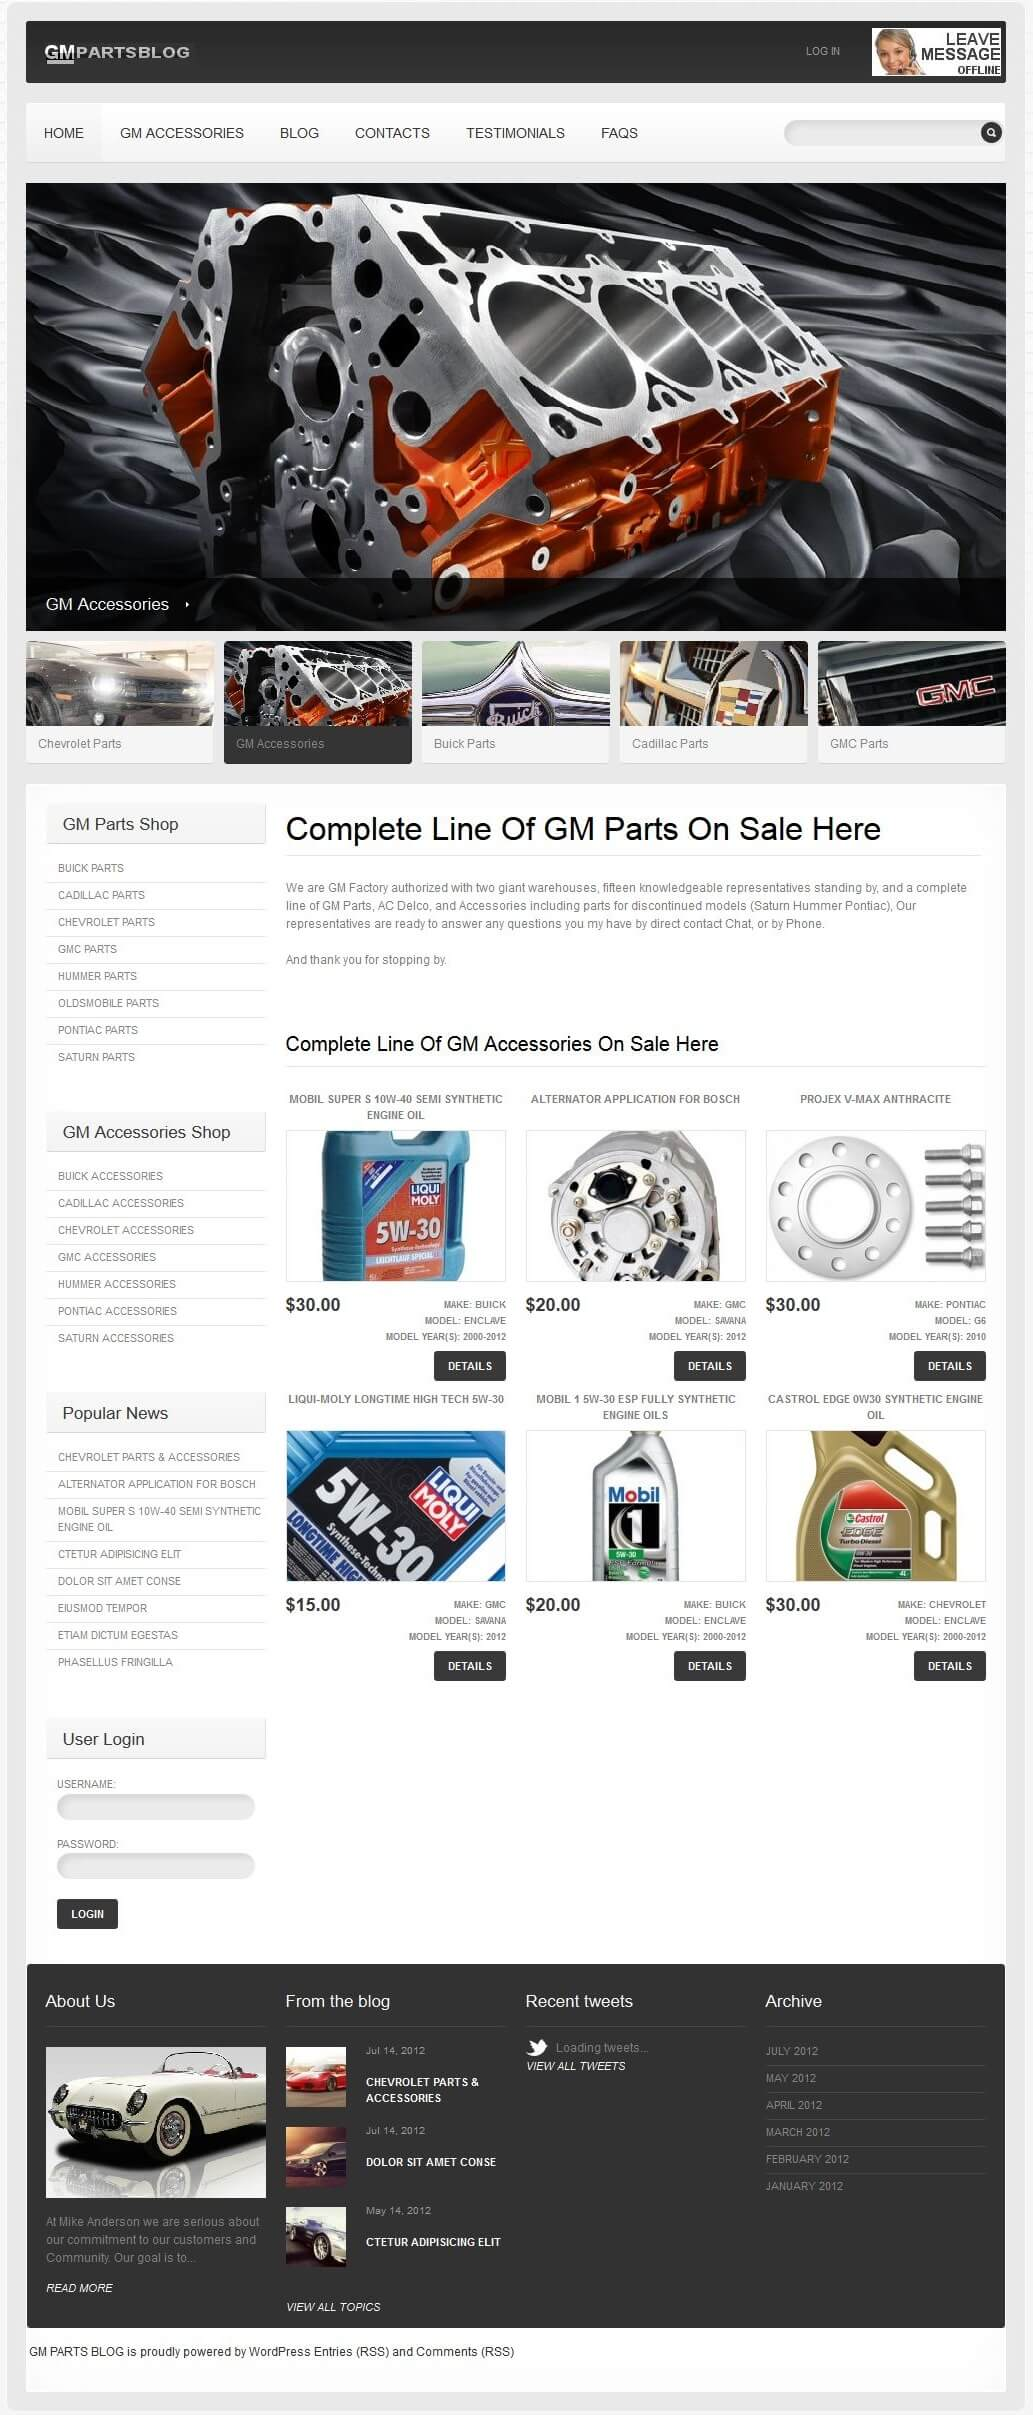 Website for Consumer 'GM Parts' Using PHP – Sell Parts & Accessories